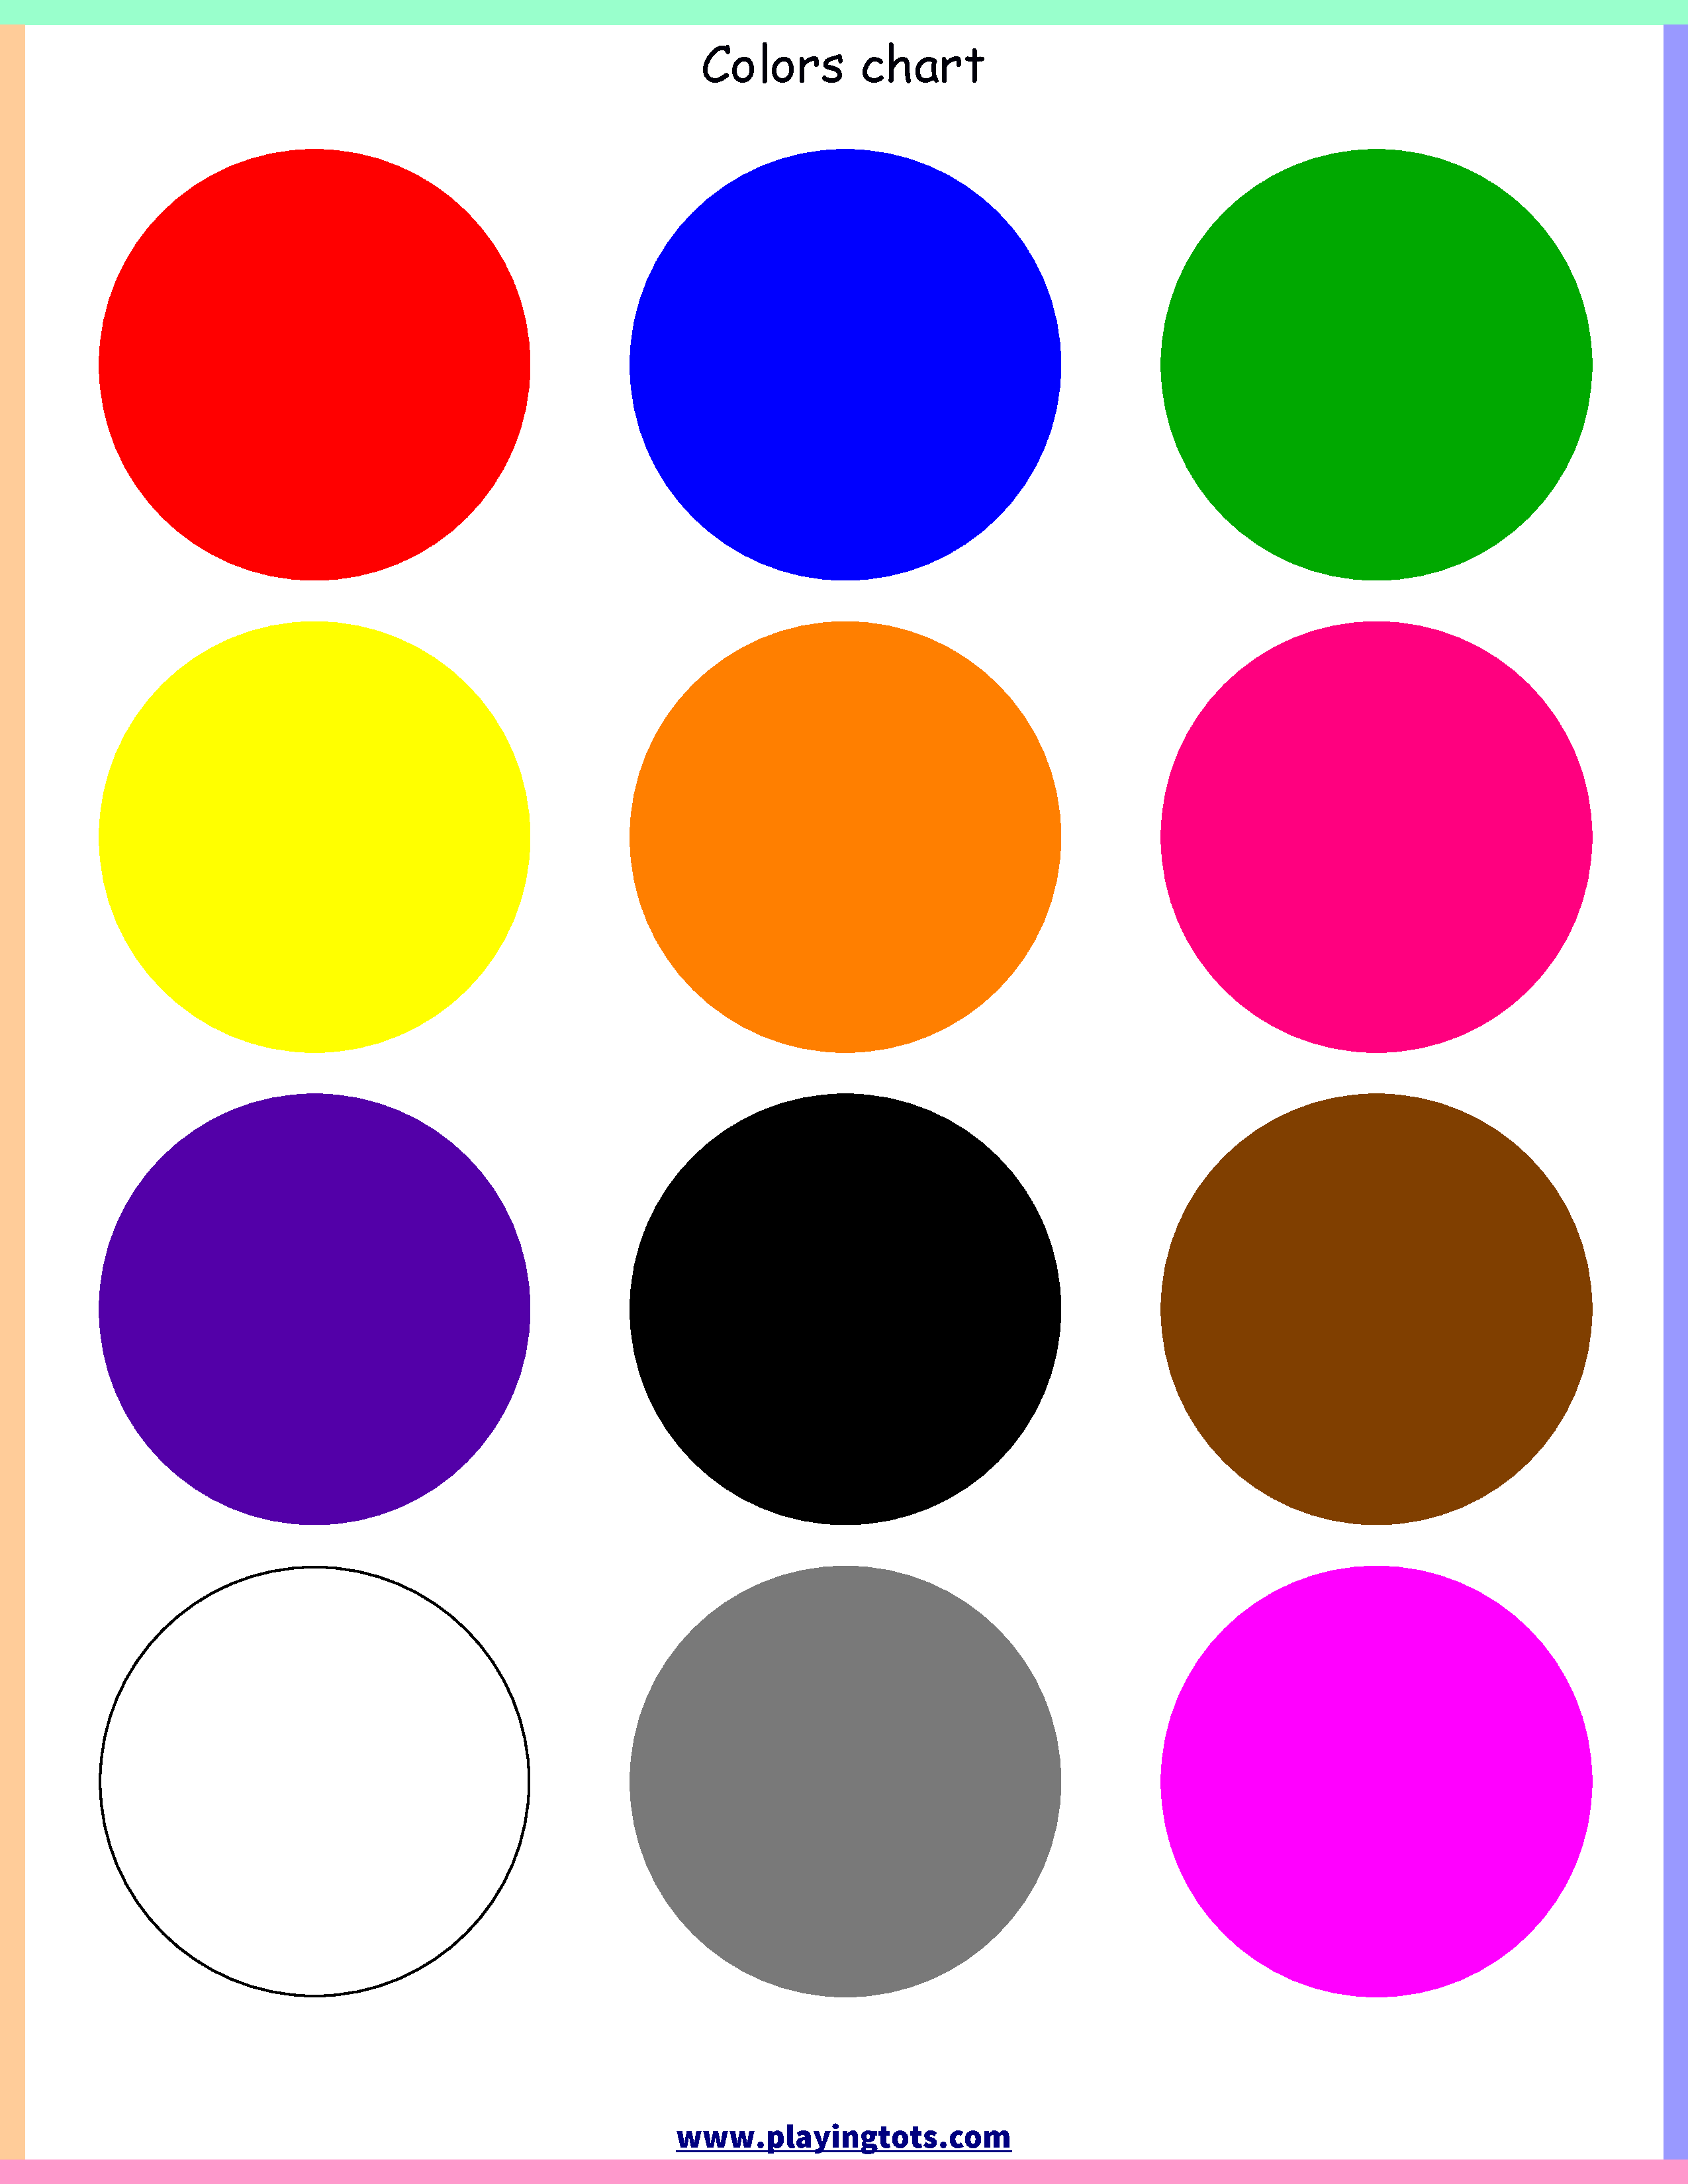 photograph regarding Printable Color Chart called Cost-free printable for youngsters (babies/preschoolers) flash playing cards